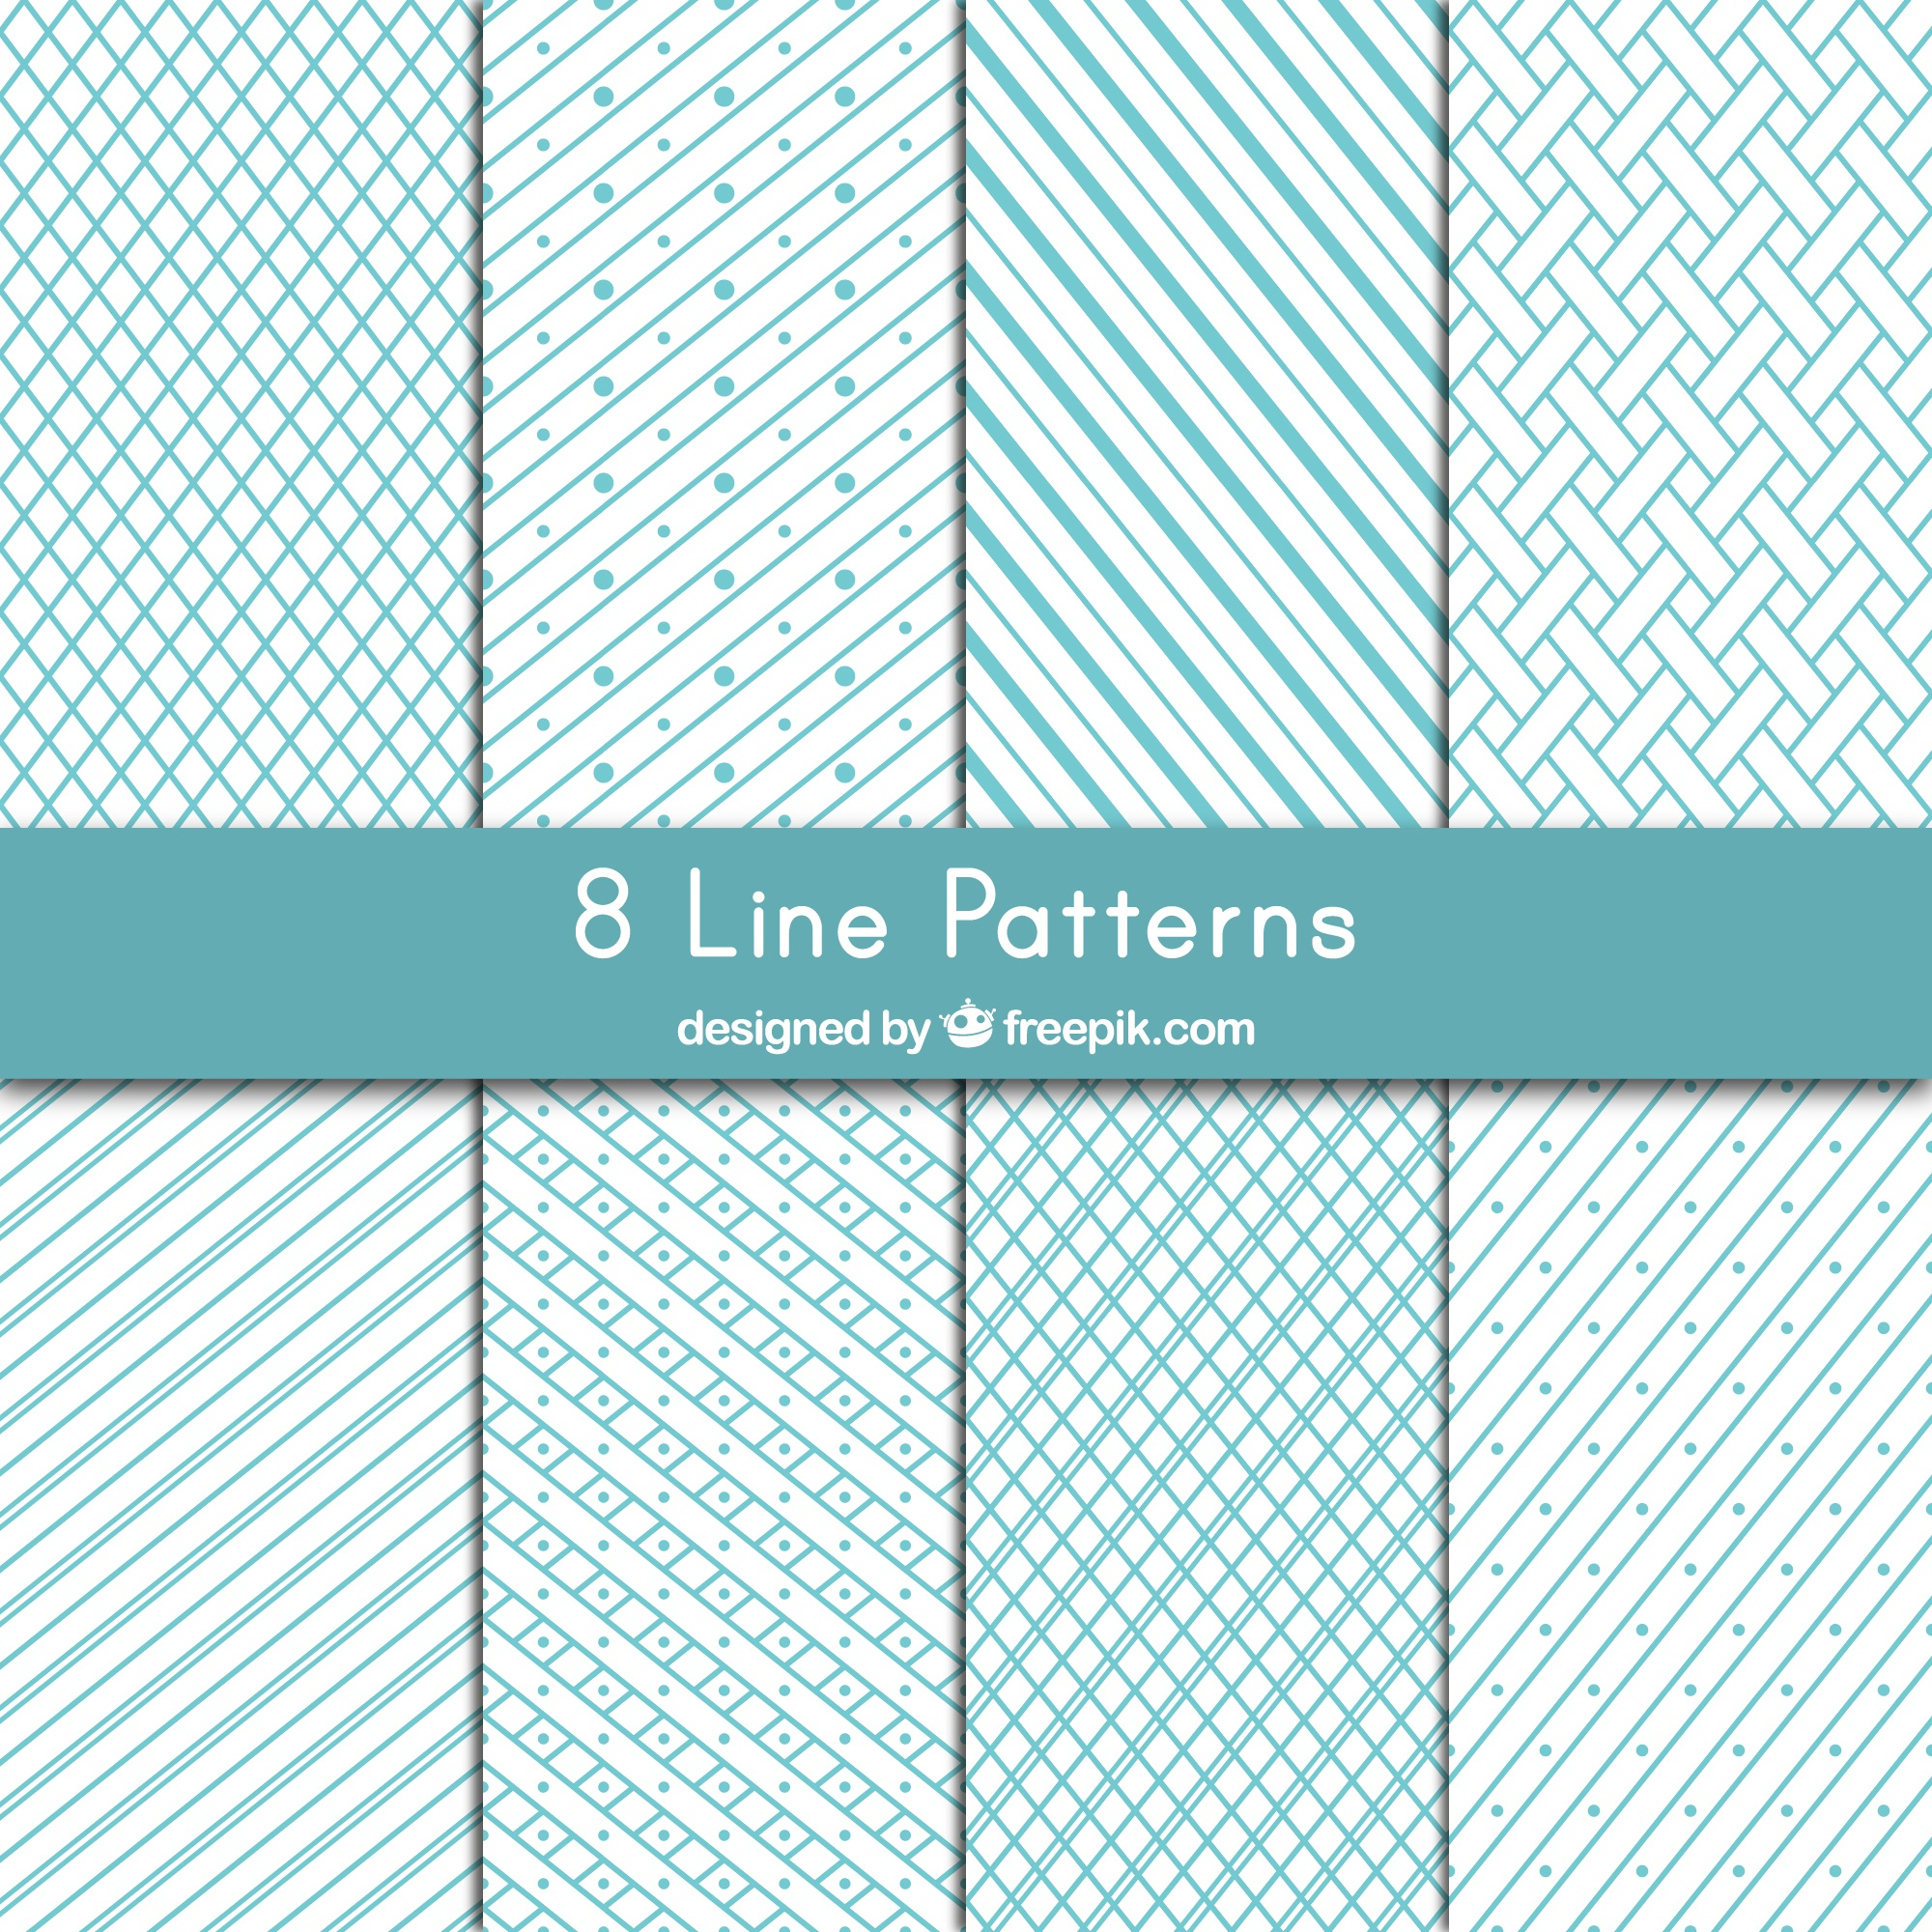 Variety of lines patterns